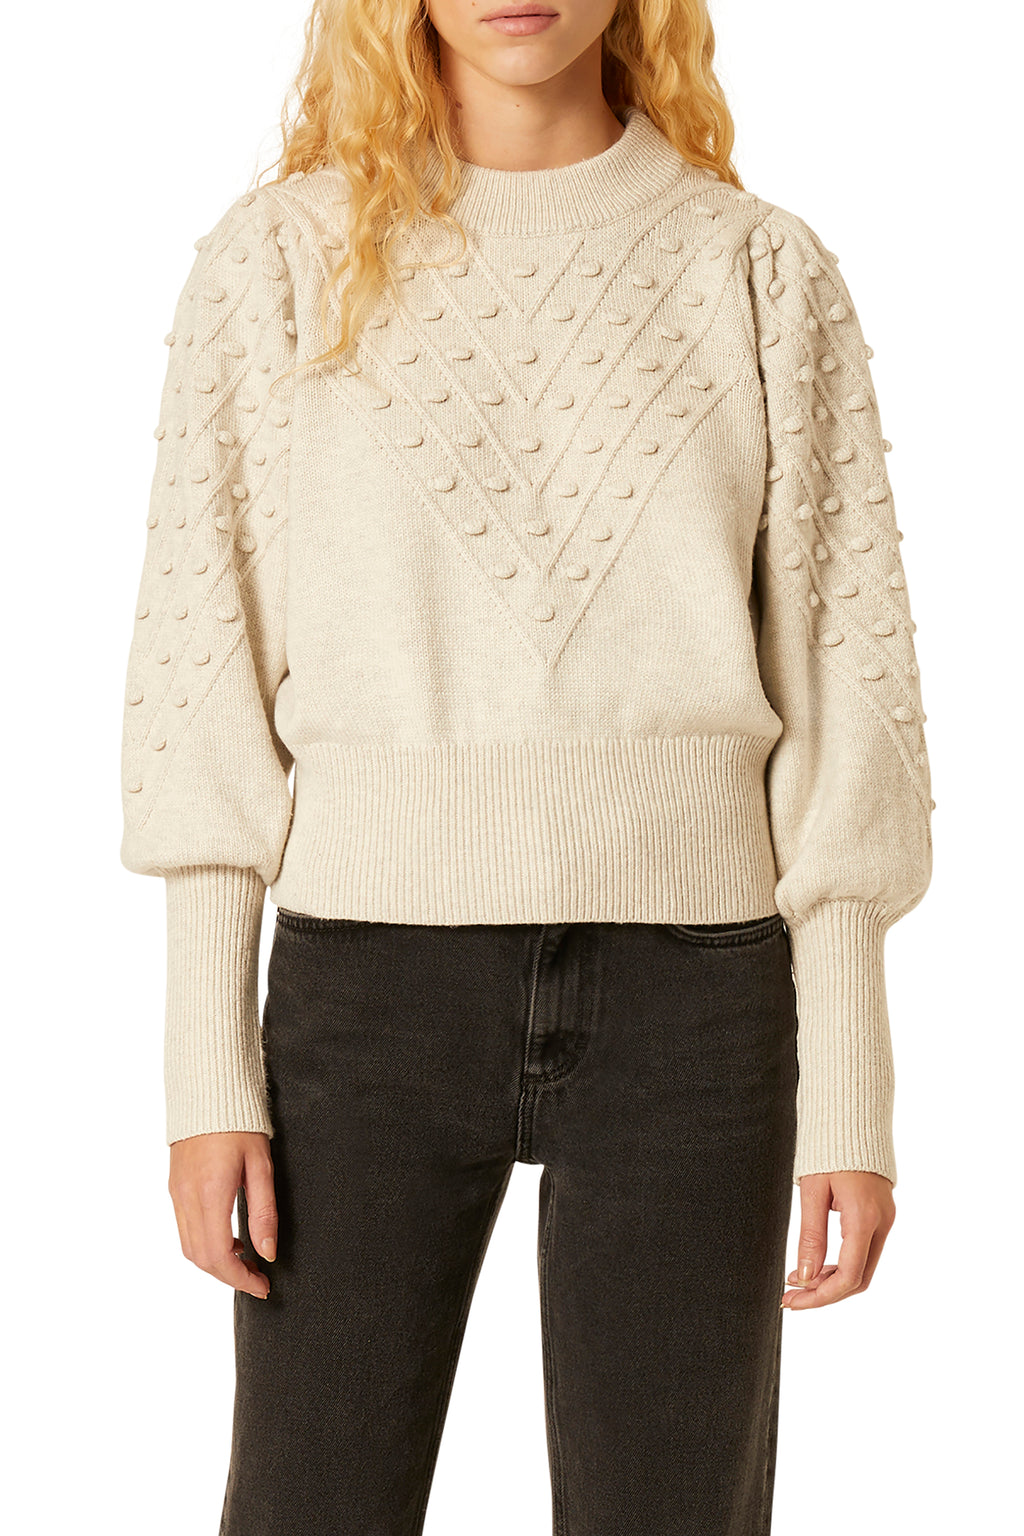 French Connection Cropped Bobble Knit Sweater in Classic Cream